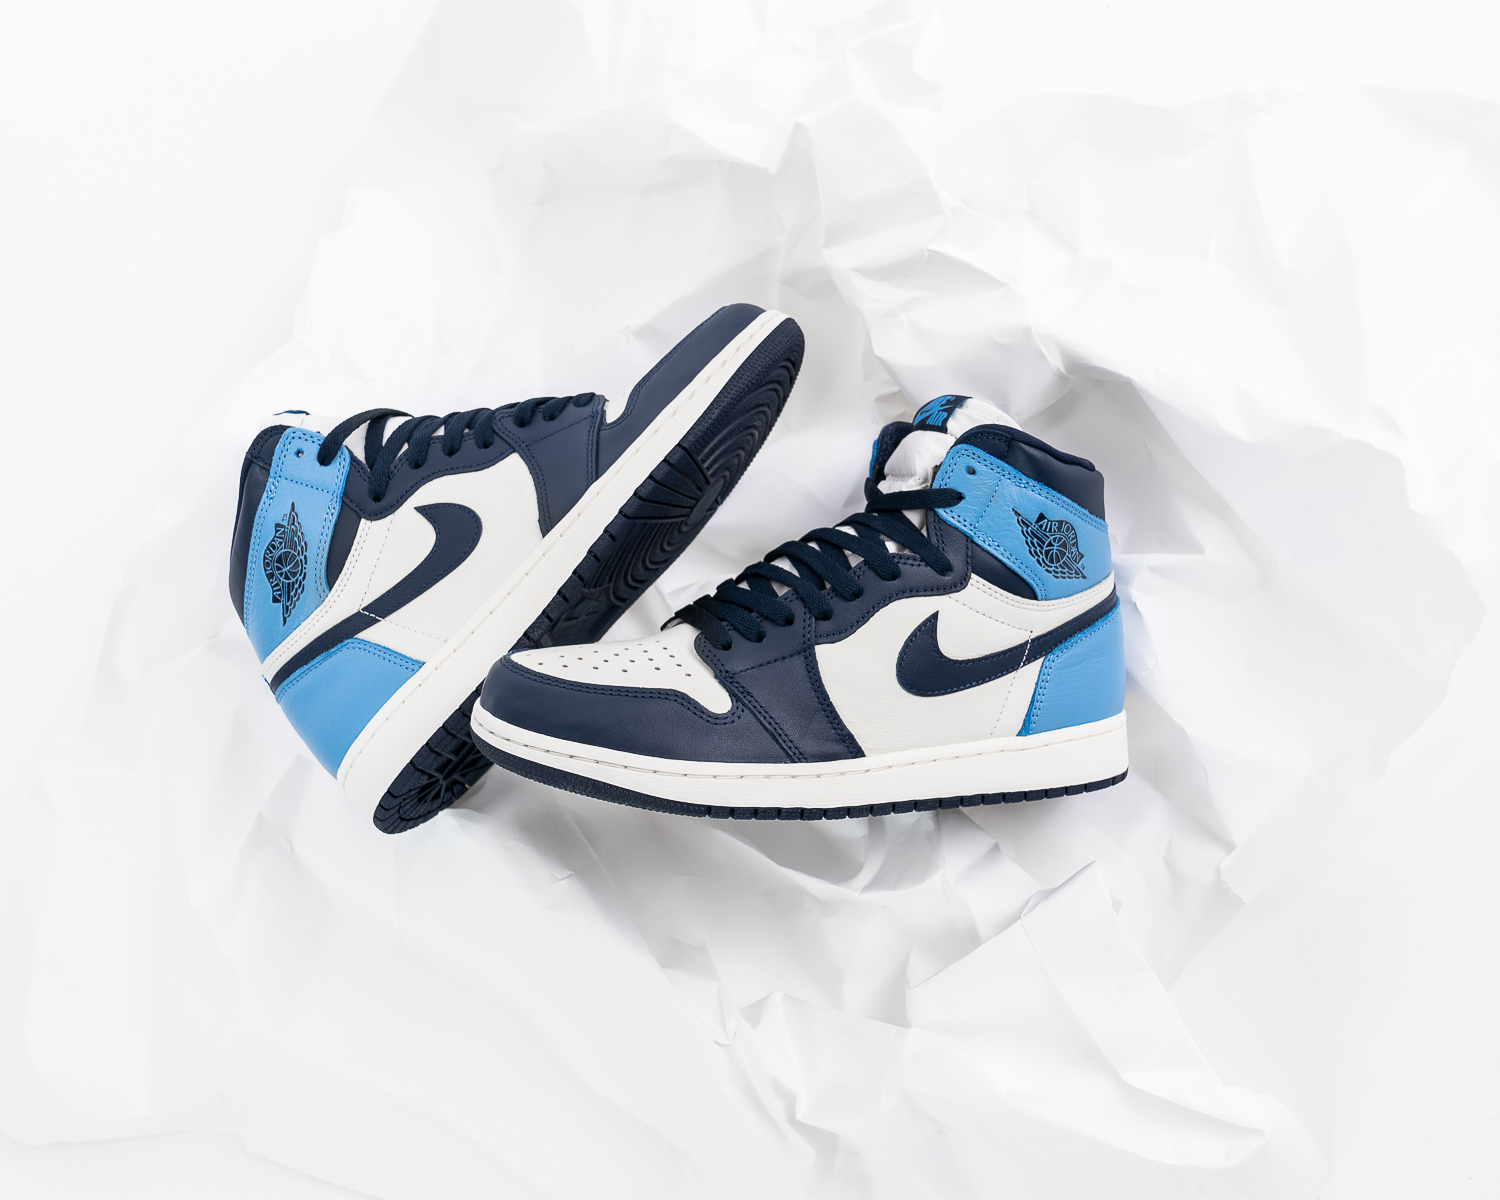 brand new 51dbc 549e4 DONE: AIR JORDAN 1 RETRO HIGH OG